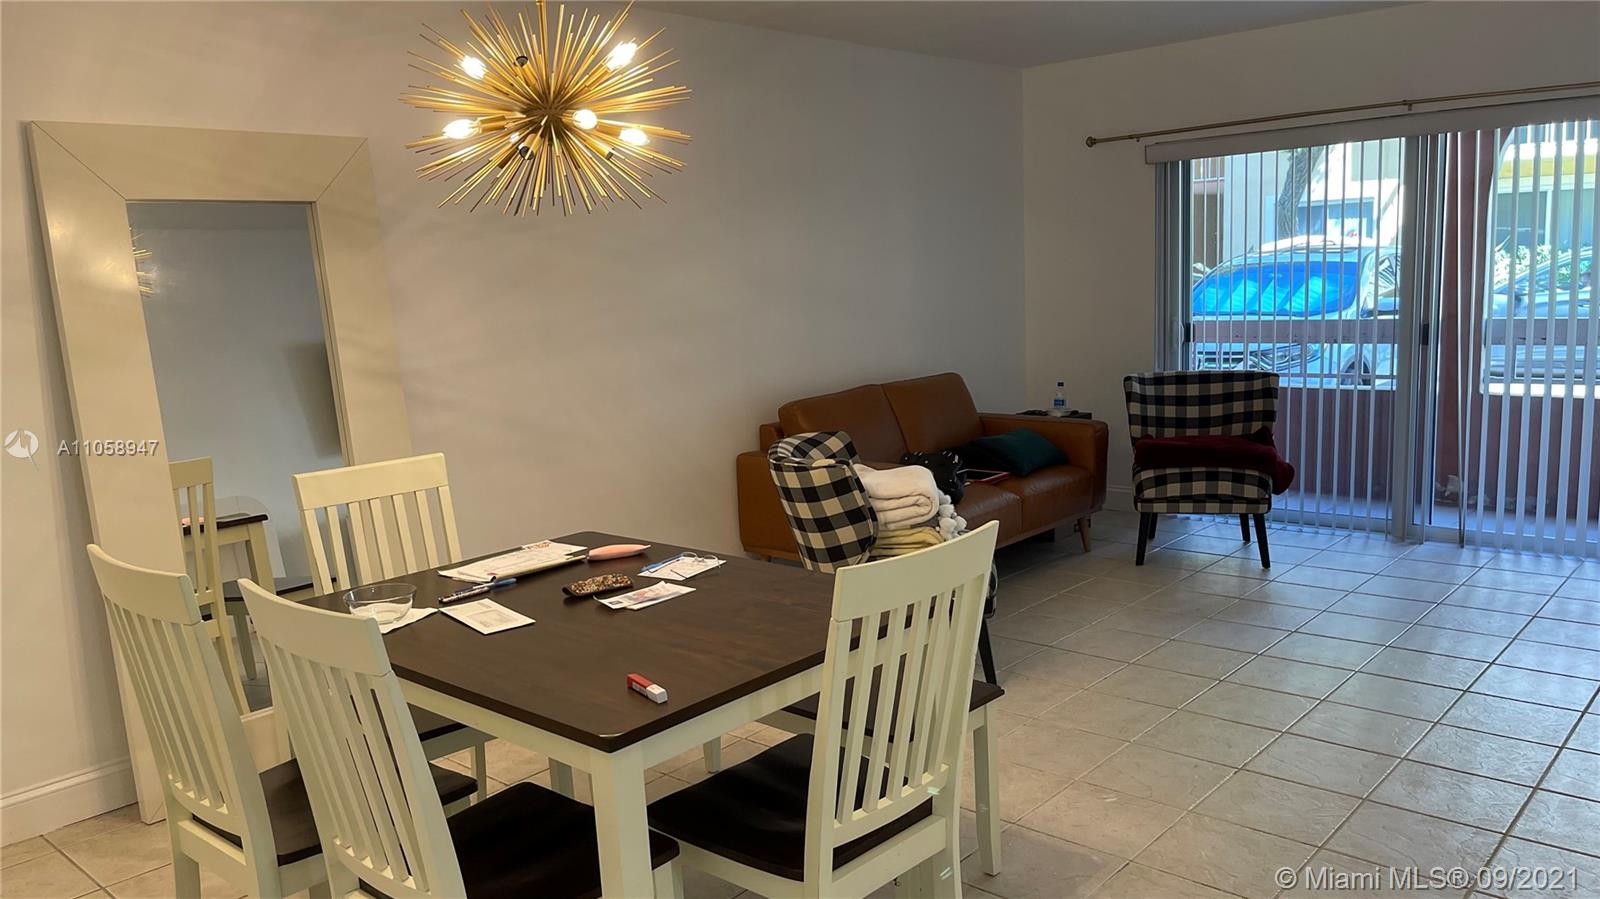 Village of Kings Creek, first floor, corner unit, 2 bedrooms and one bathroom. tile floor through out, impact windows and  impact patio door with balcony. 24 hours patrol, great management, close to US 1,Metrorail, Dadeland mall and right off HW 826